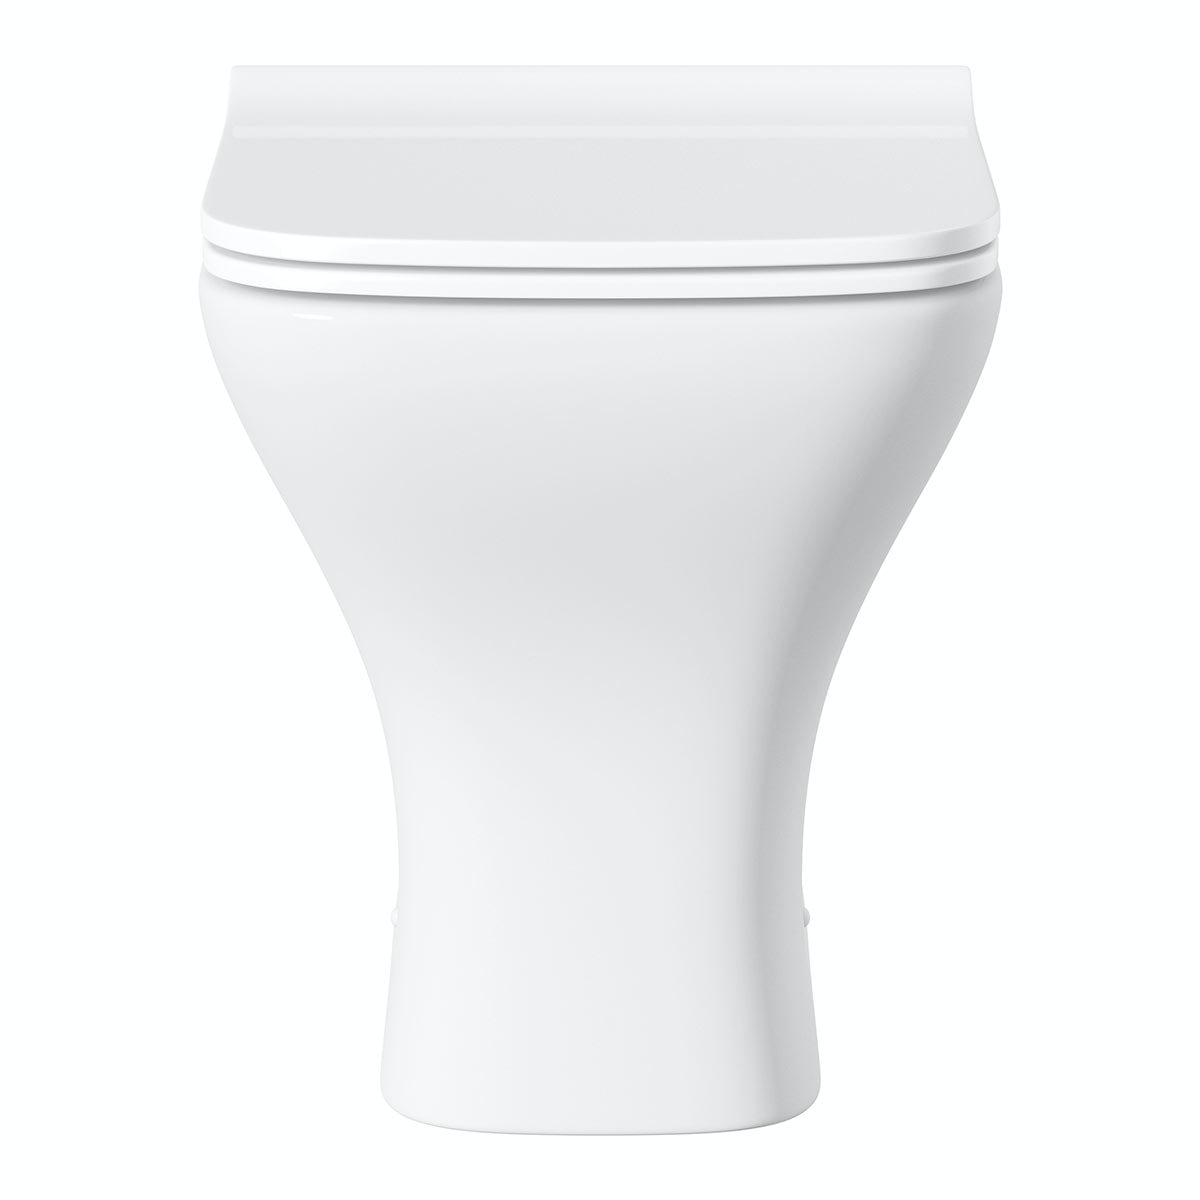 Orchard Derwent square compact back to wall toilet with soft close